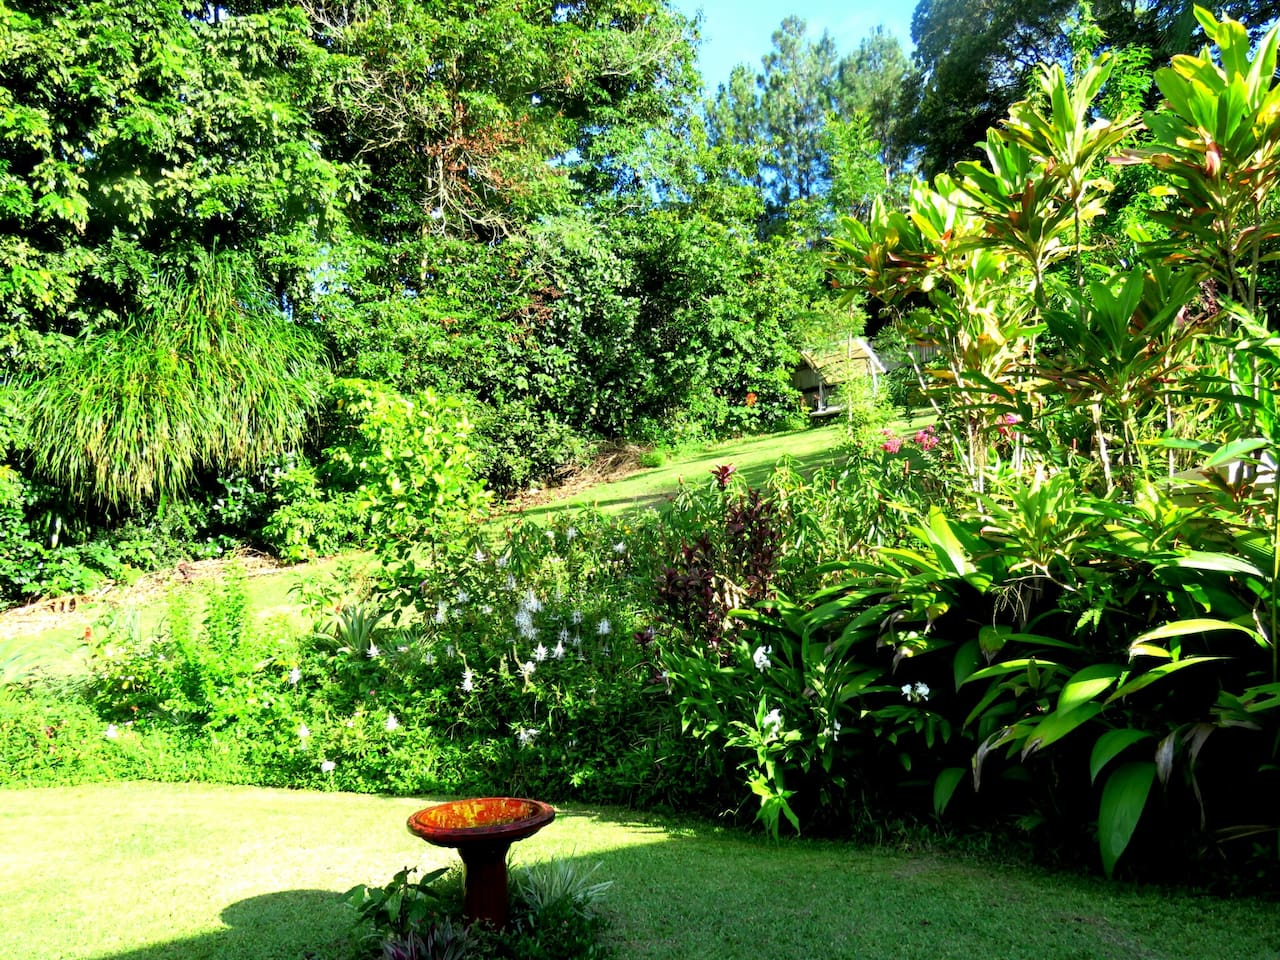 The view of the garden from your room